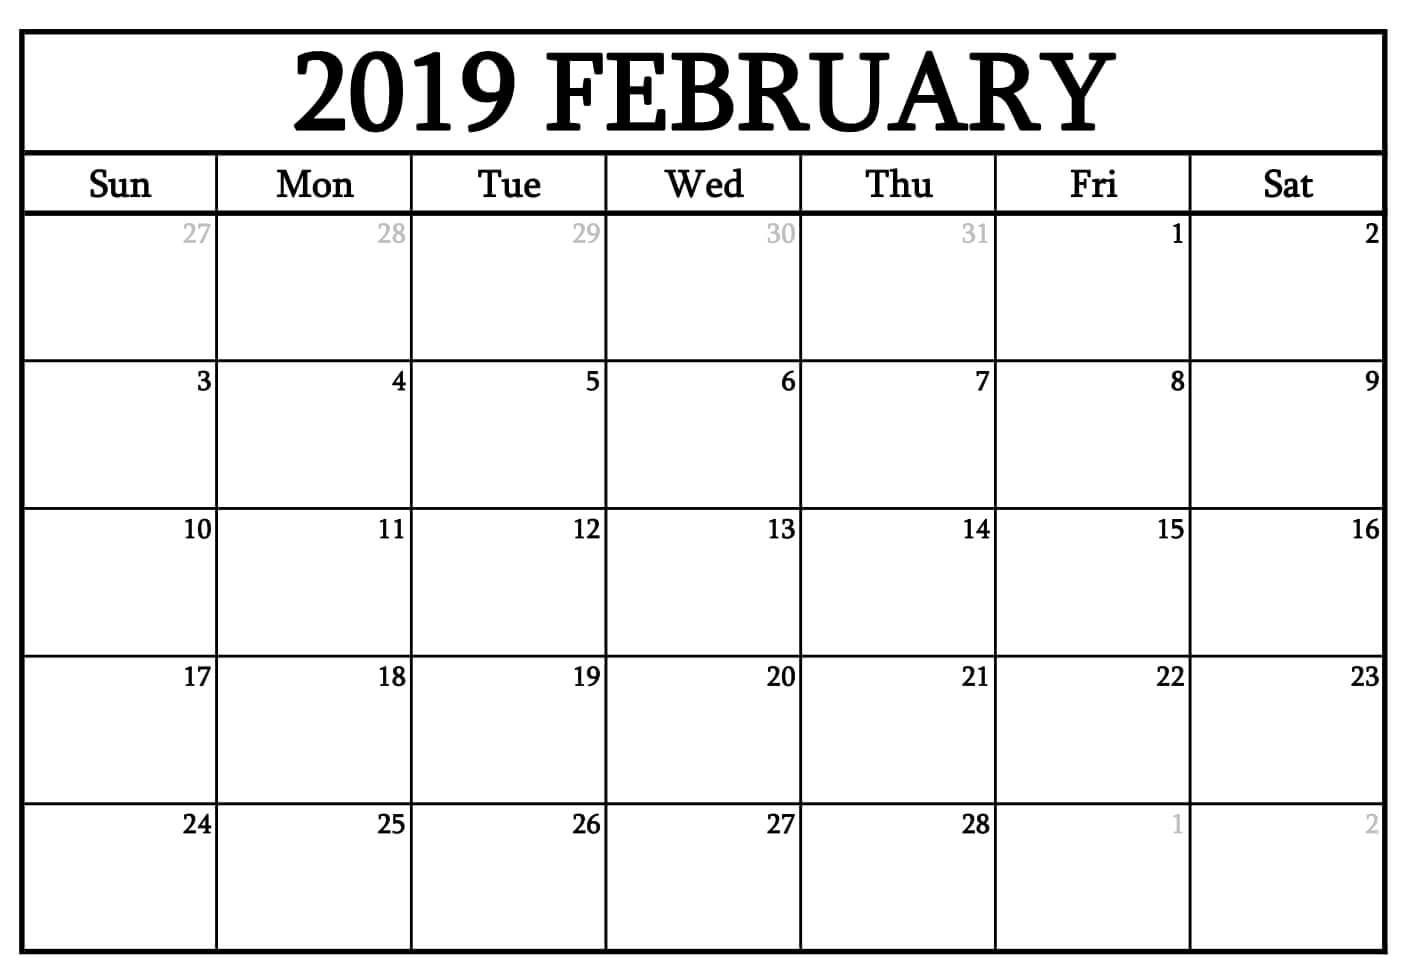 Waterproof February 2019 Calendar february 2019 waterproof calendar | 2019 Calendars | 2018 calendar